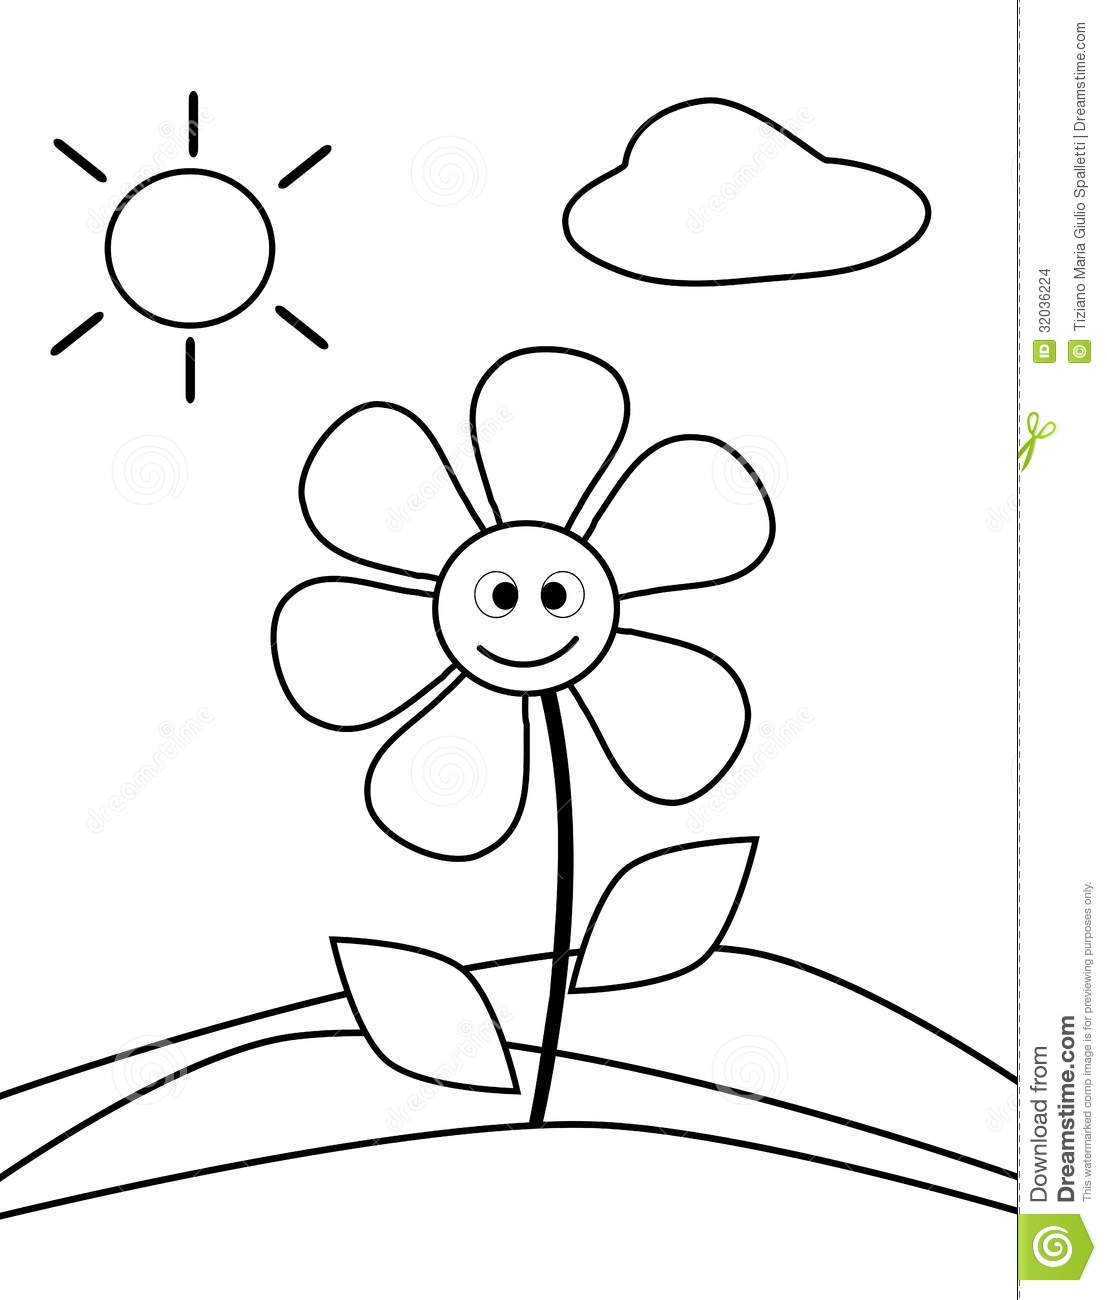 Coloring Flower Stock Photo Illustration Of Cartoon